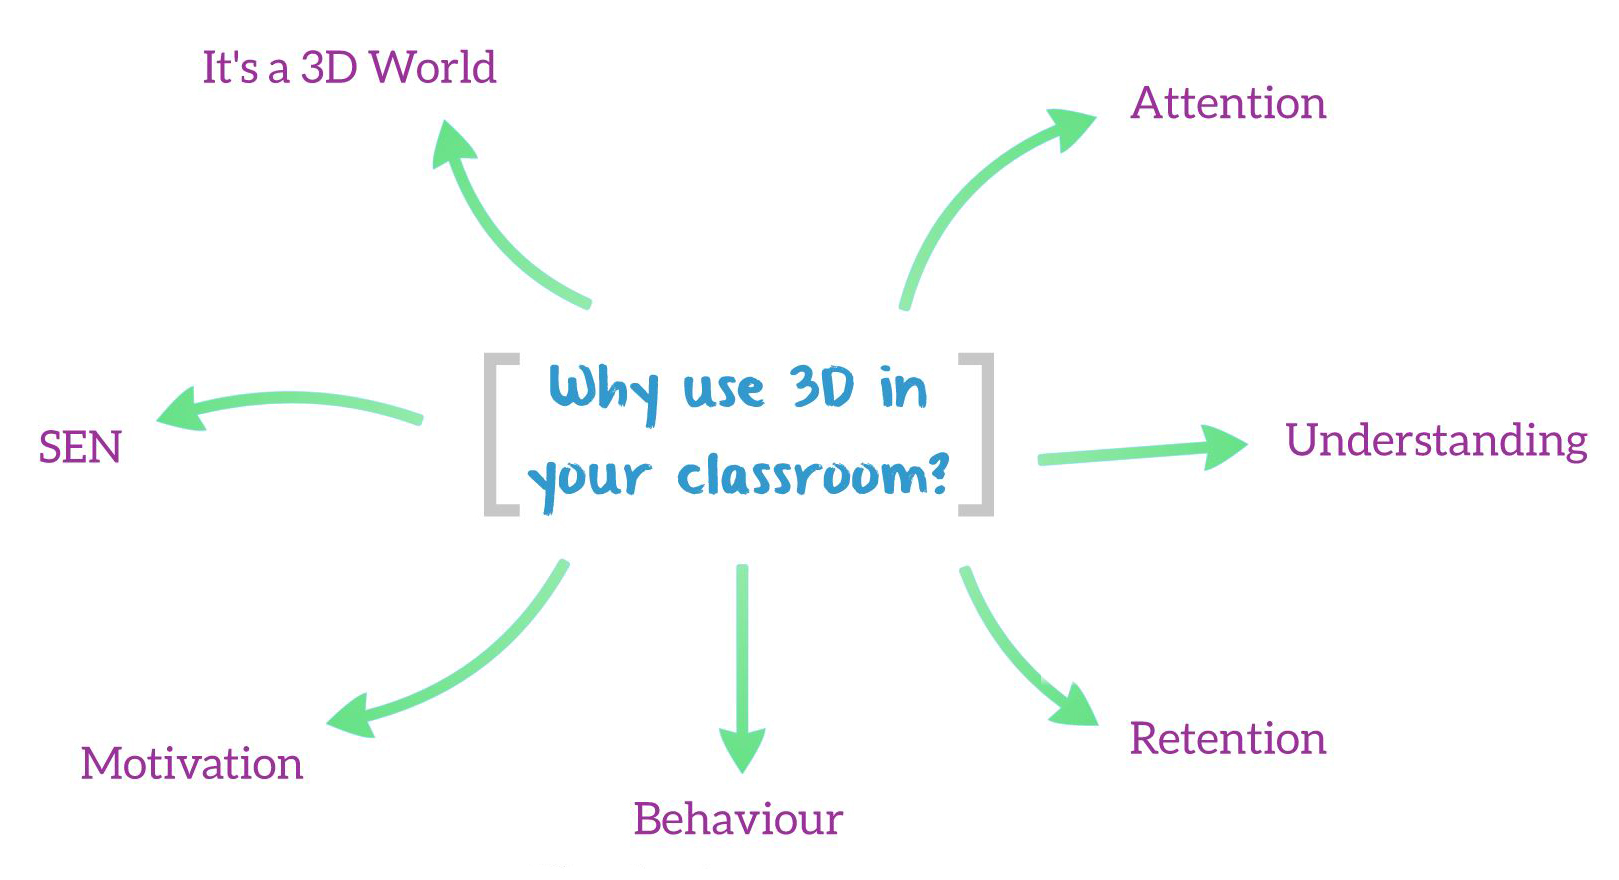 Benefits of 3D learning